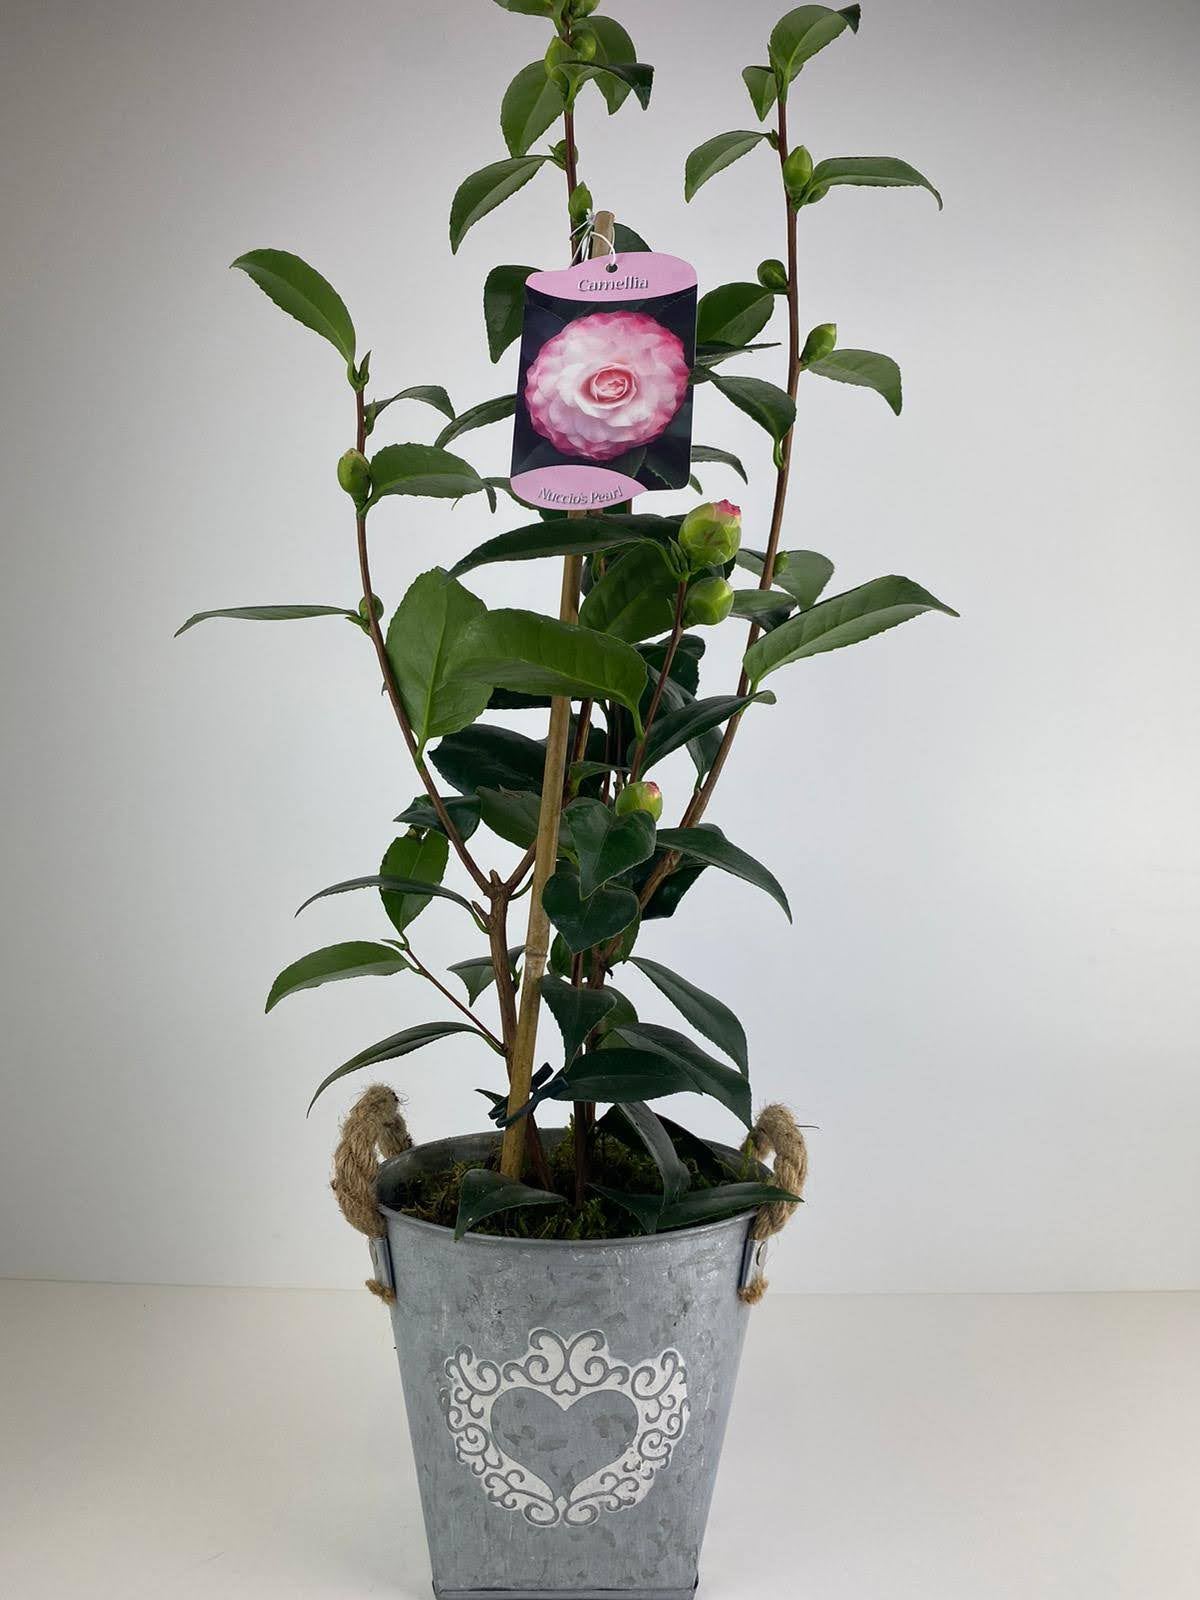 Camellia Pink Bicolour in Metal Heart Planter